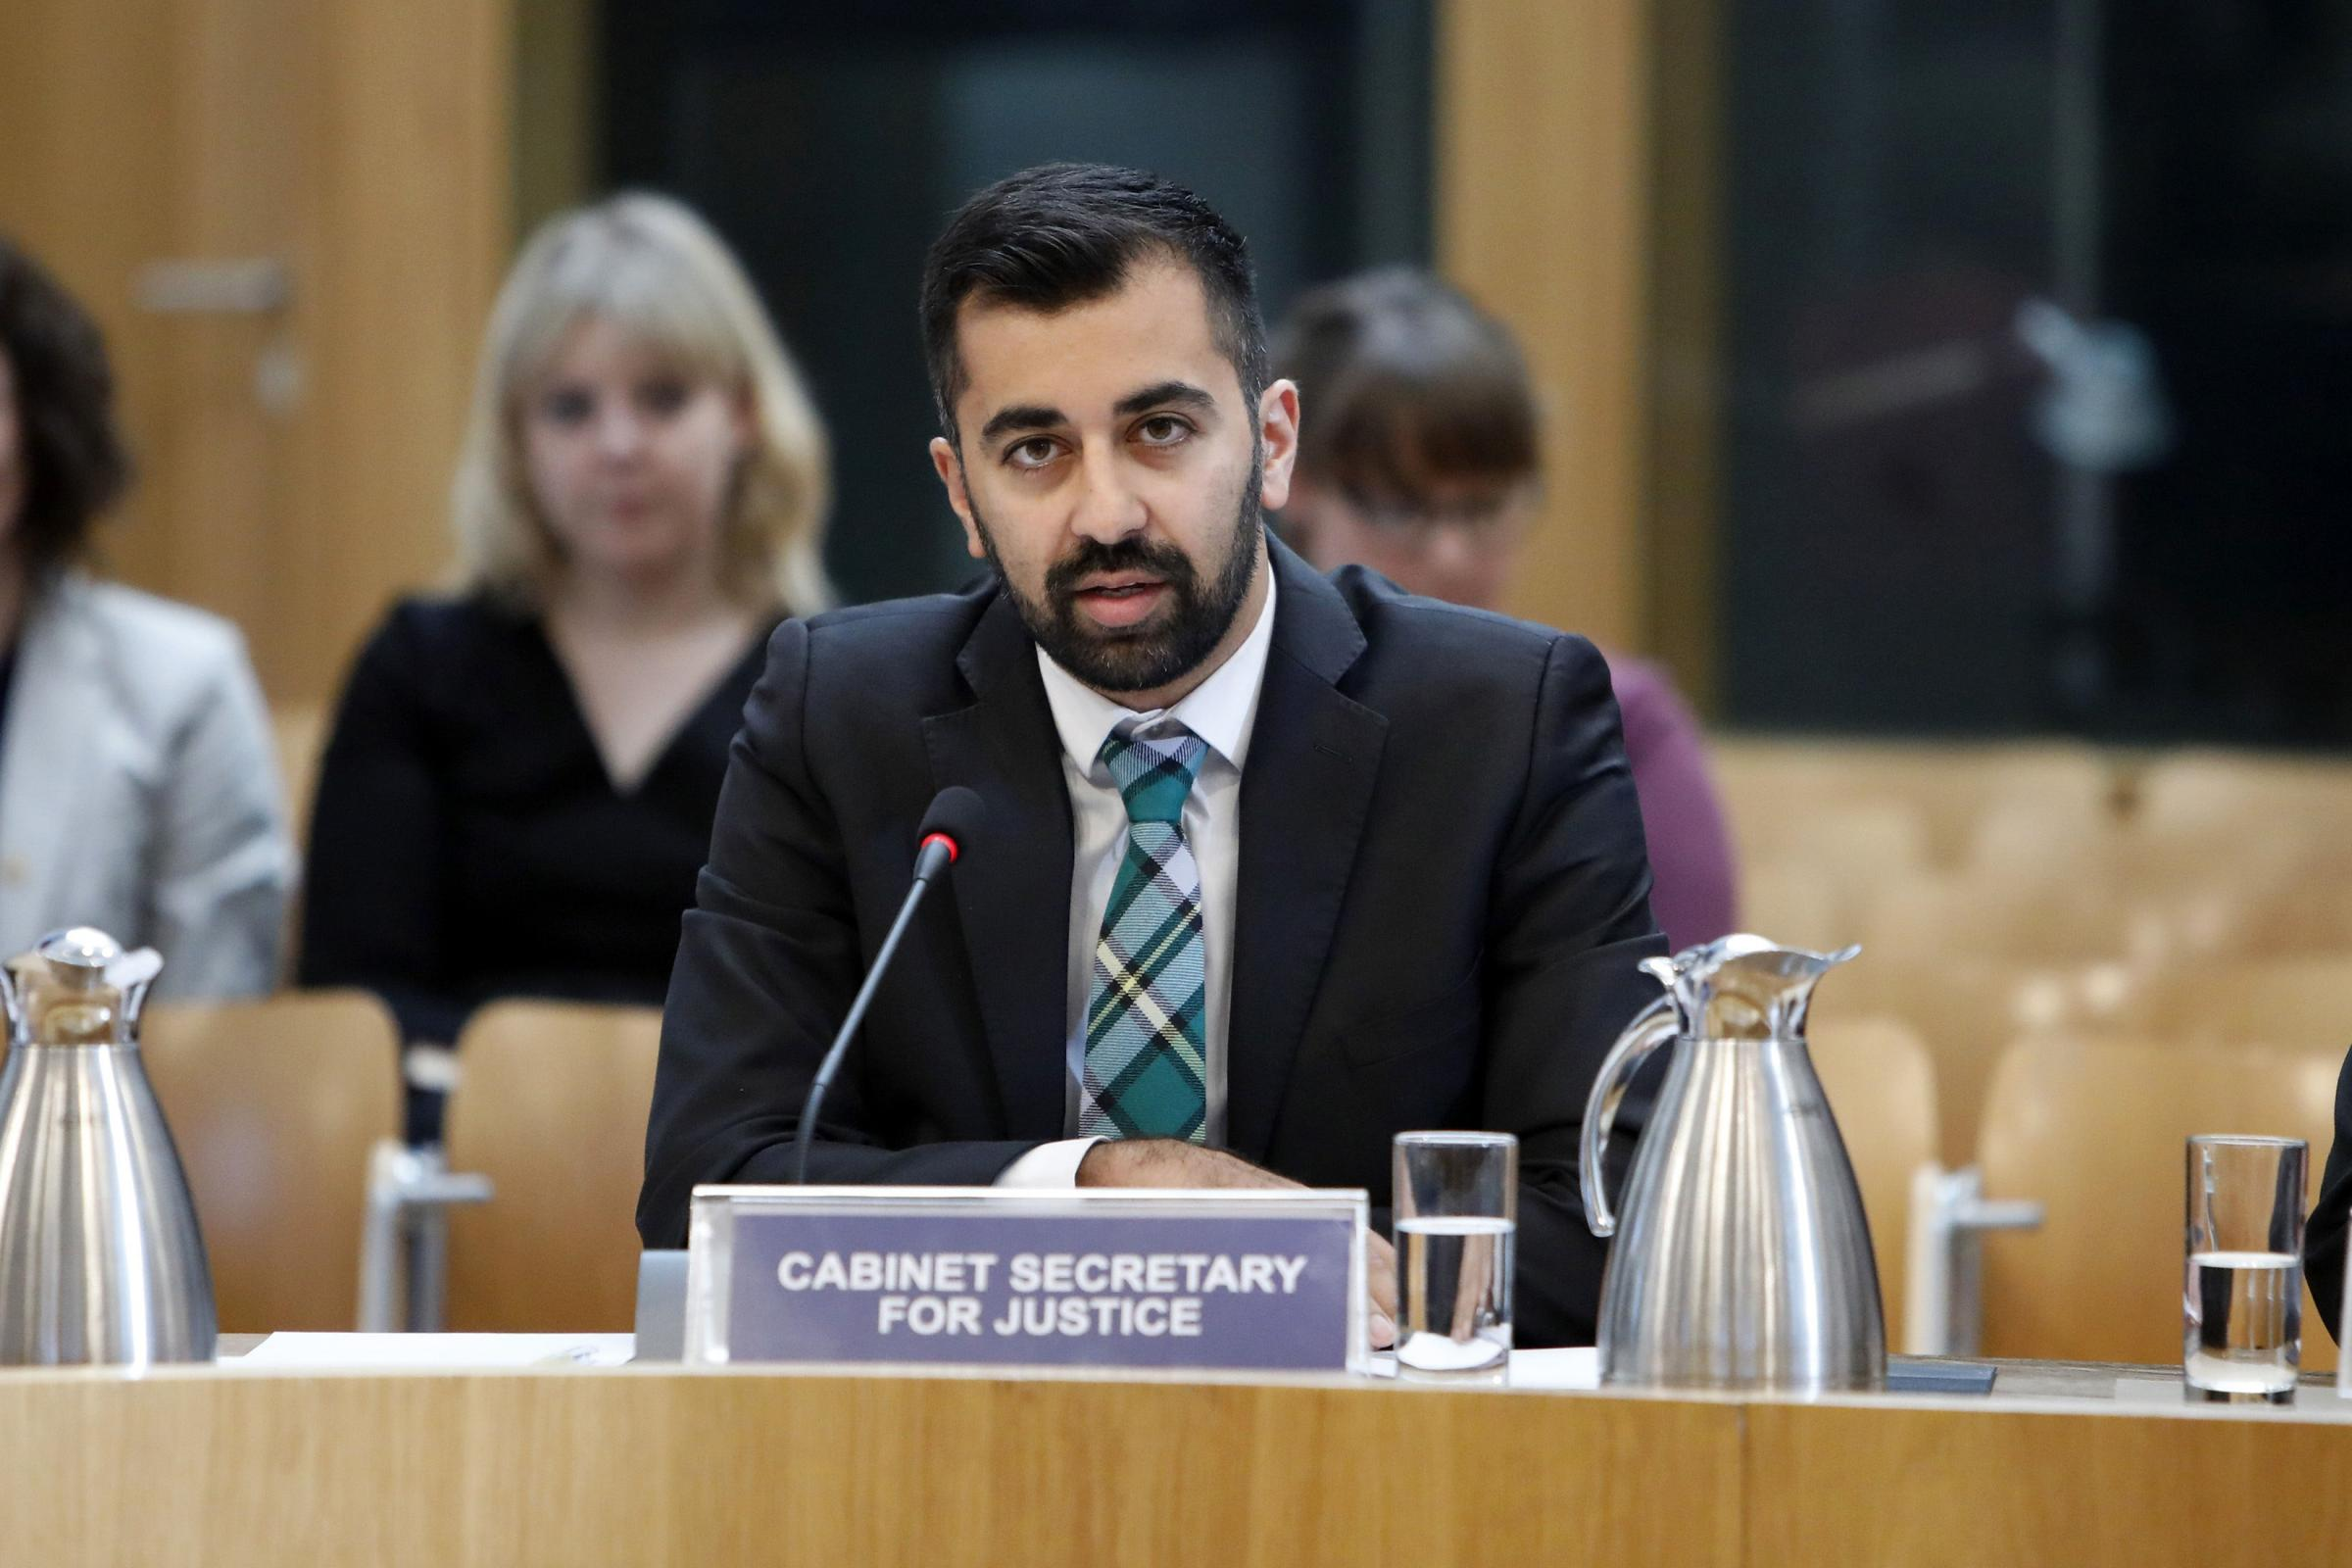 VAT payback could boost investment in Police Scotland, says Yousaf